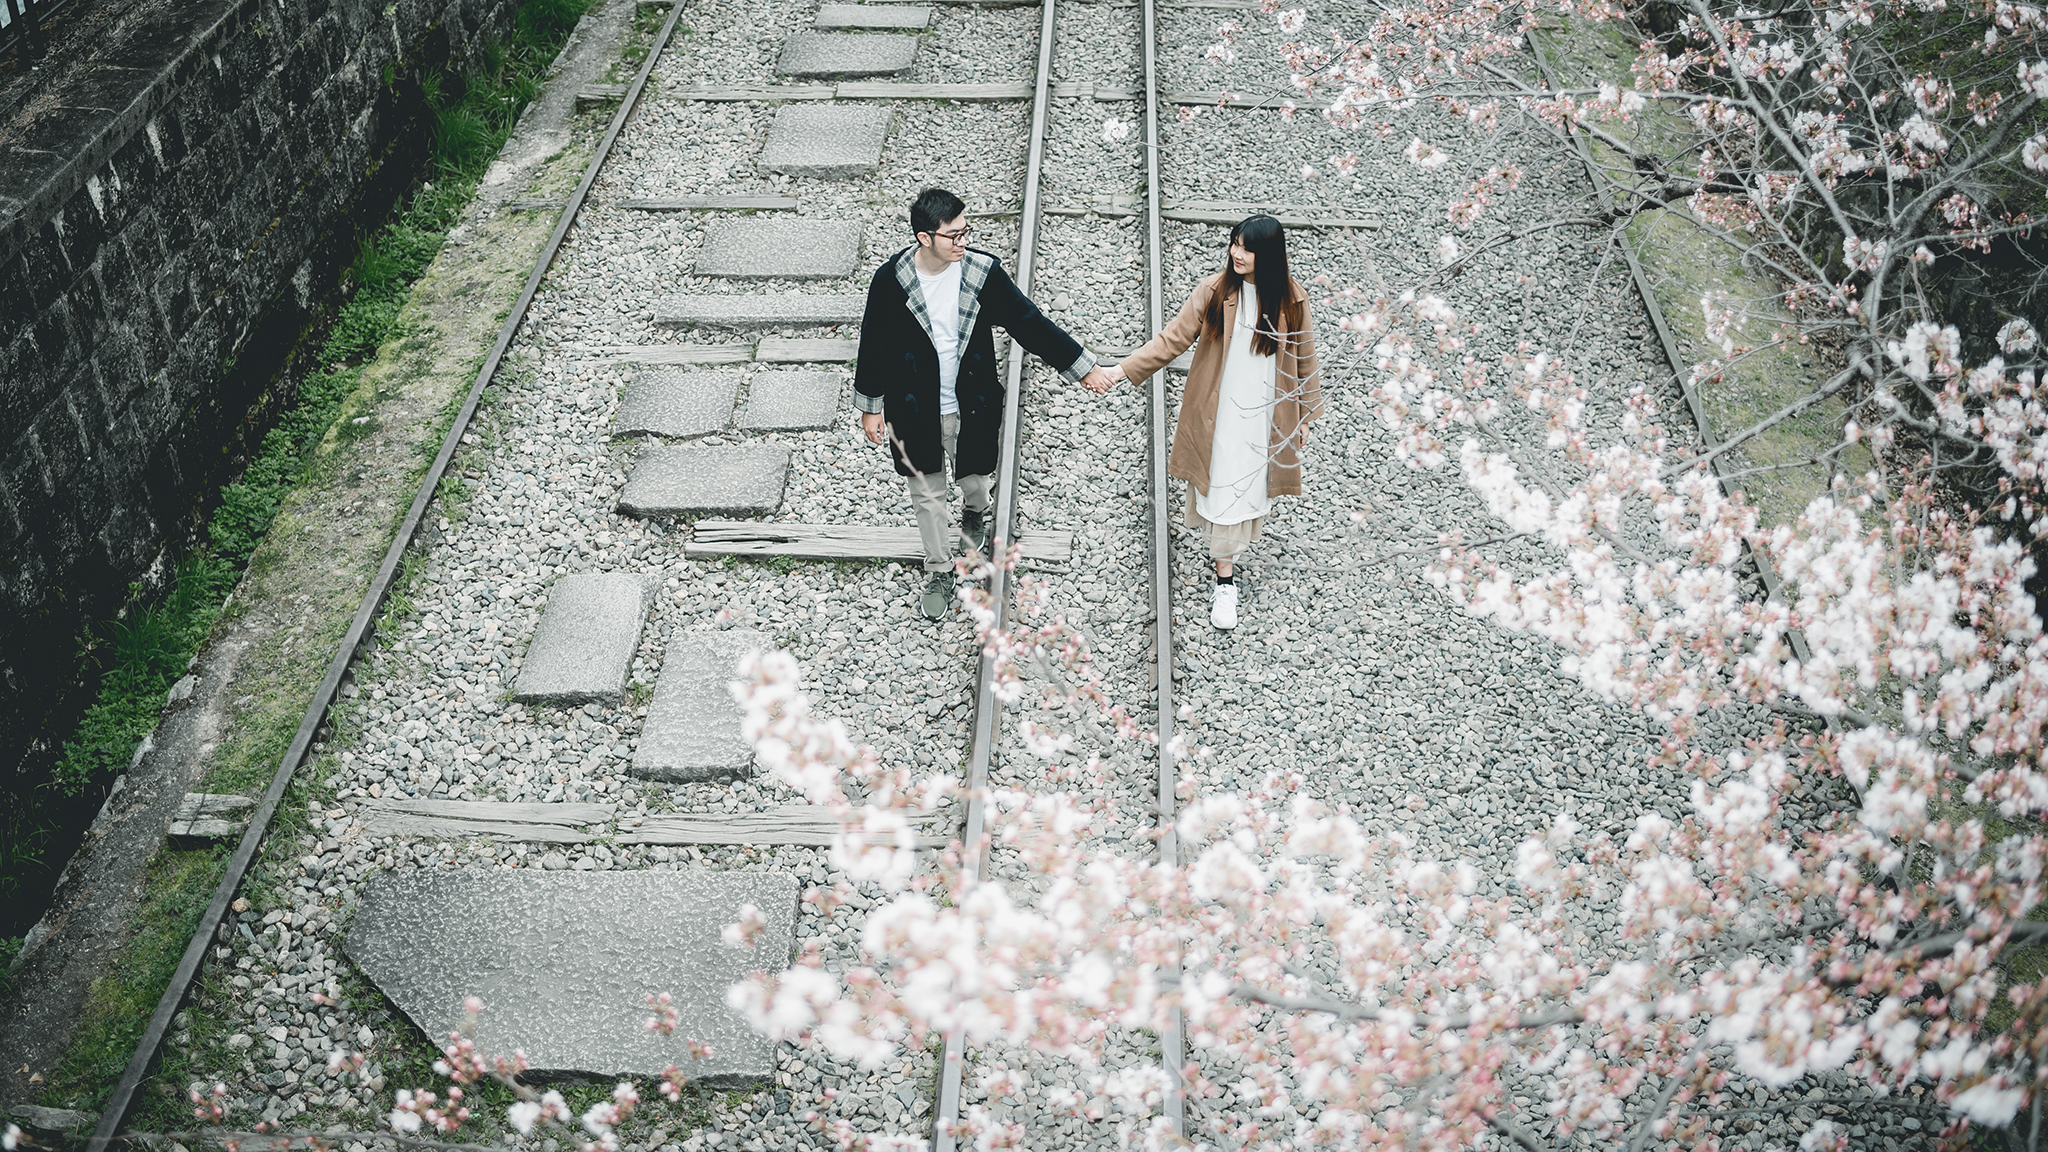 Prewedding Kyoto Keage Incline 00011.JPG